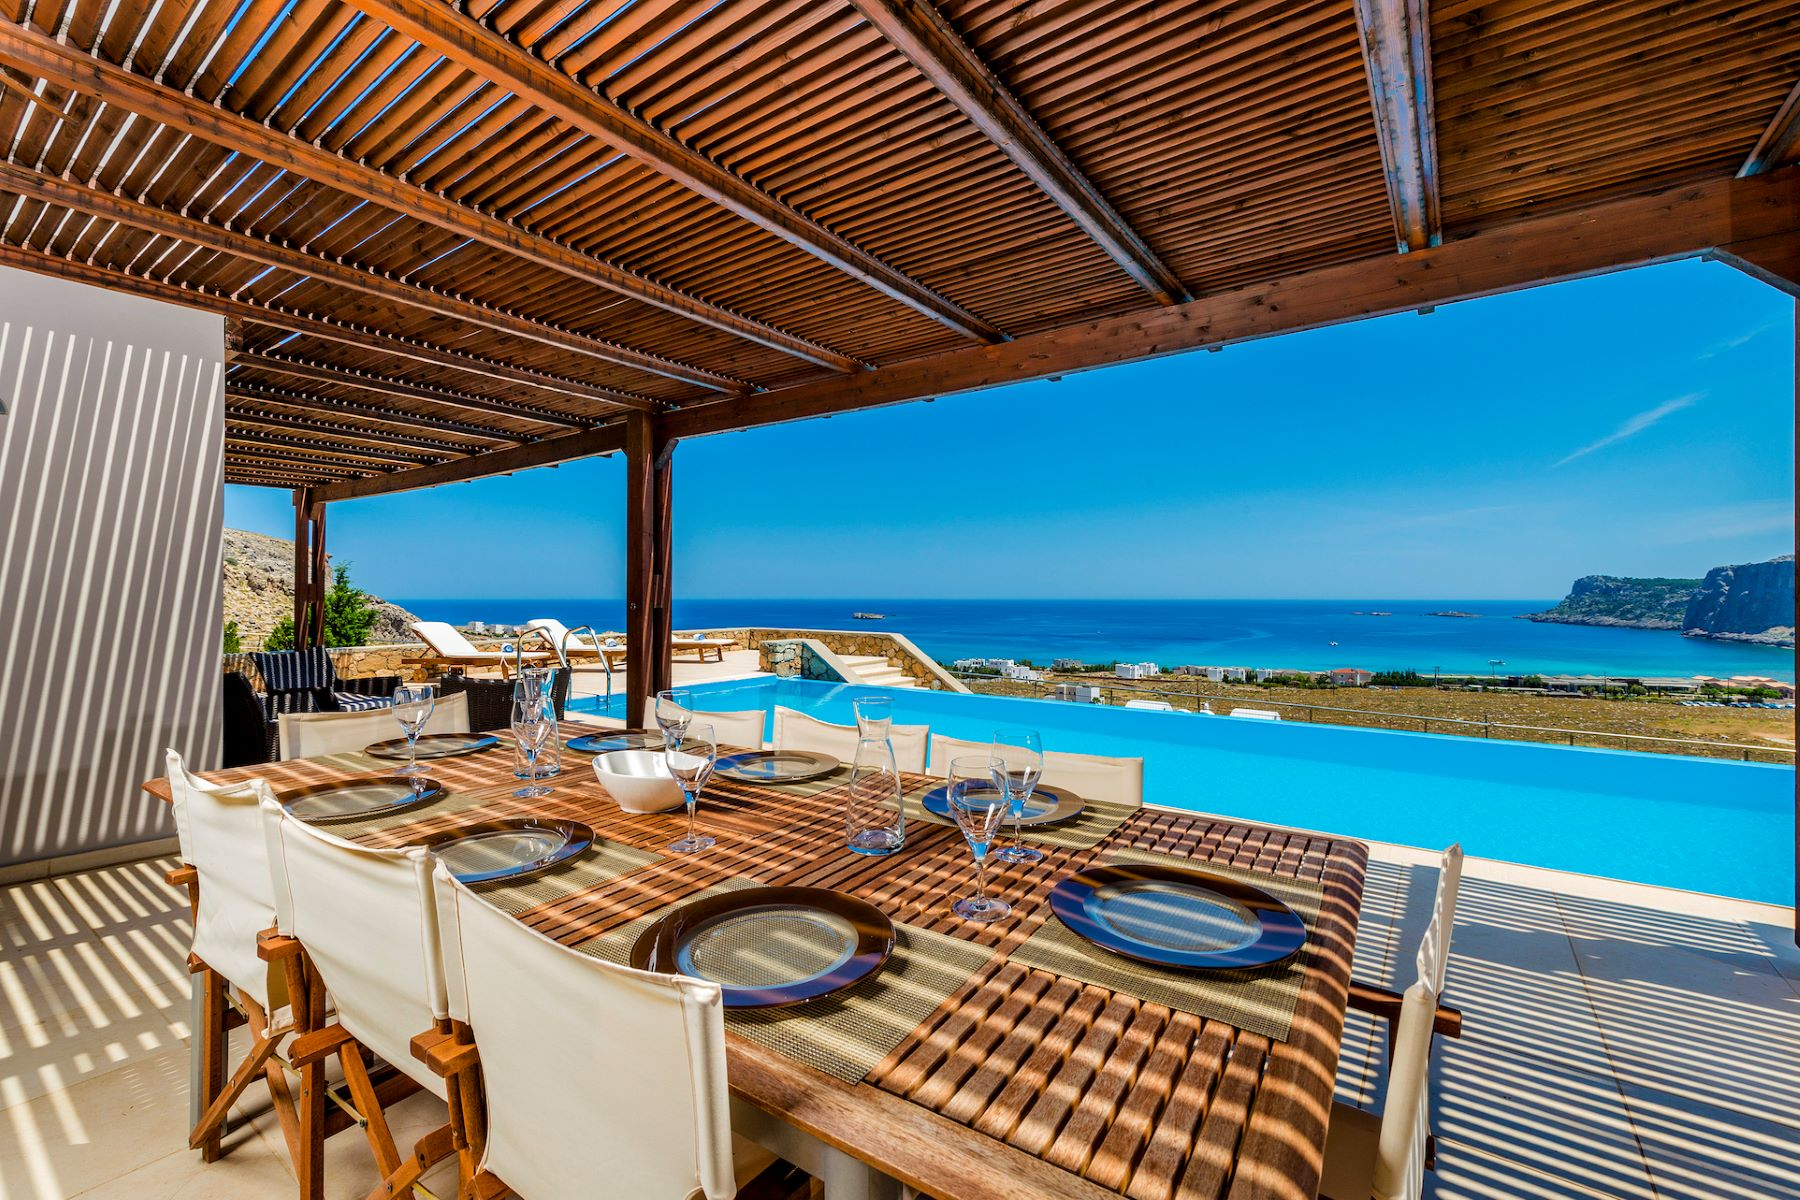 Single Family Home for Sale at Jet Set Navarone Bay Jet-Set Rhodes, Southern Aegean, 85133 Greece